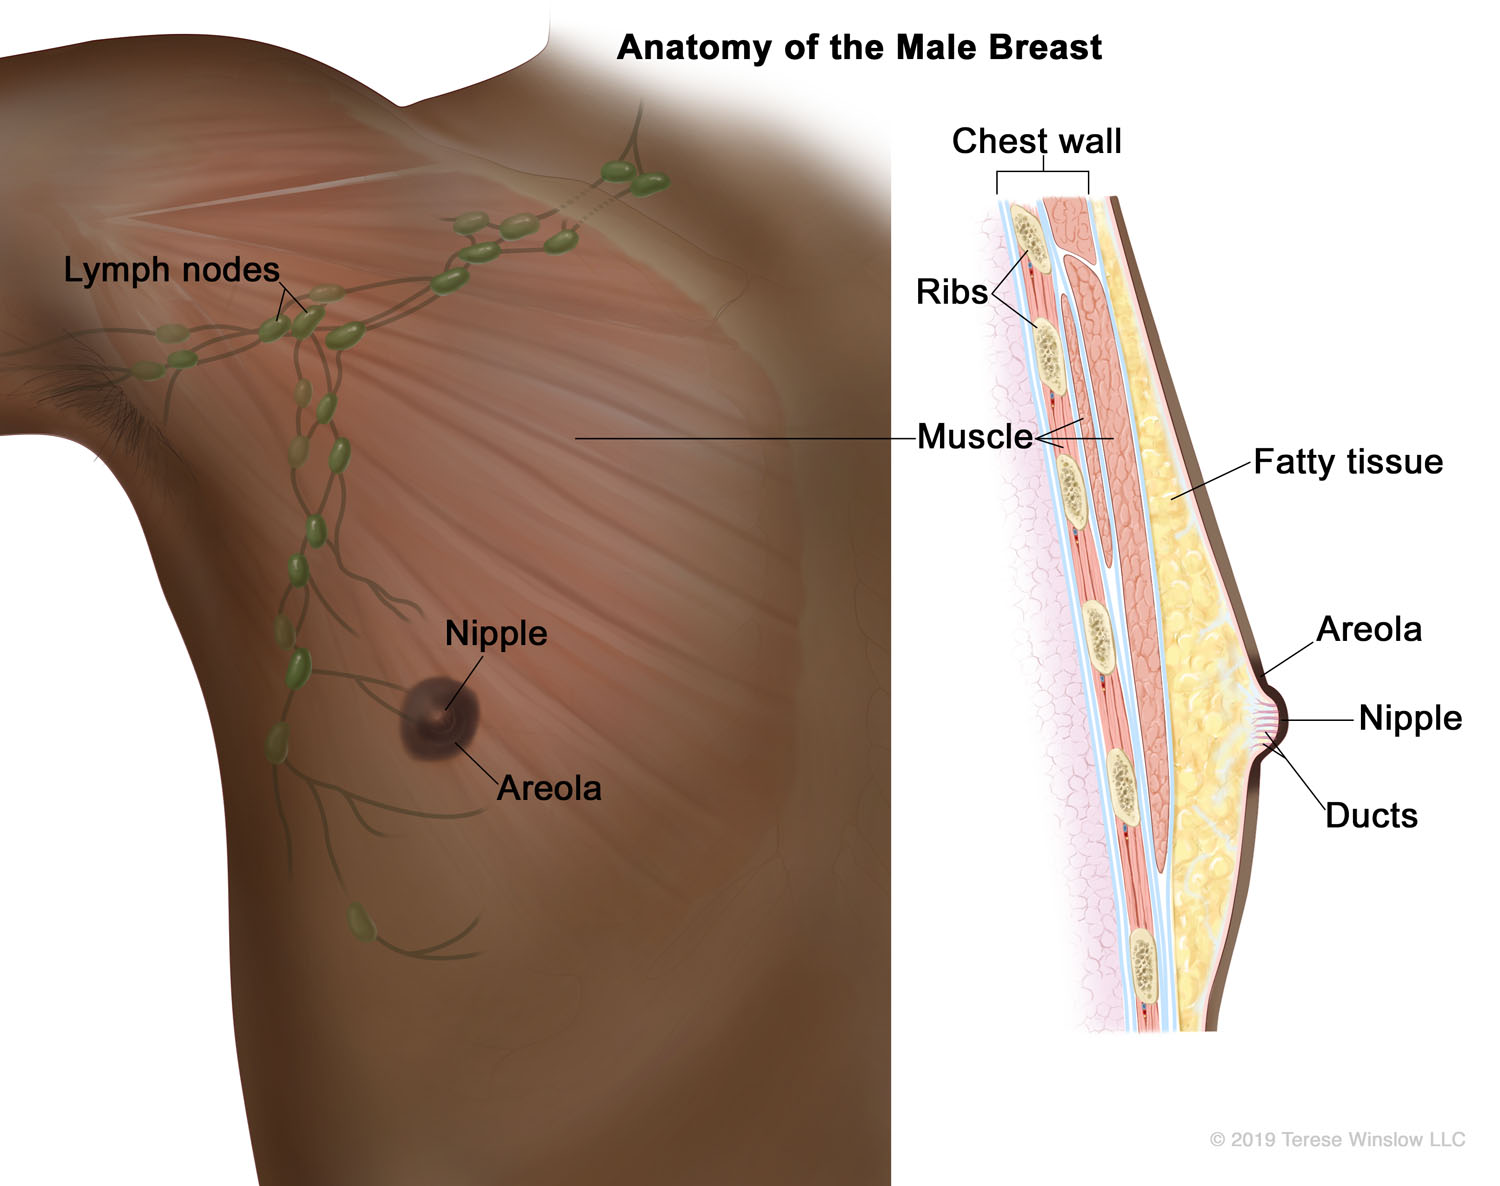 Anatomy of the Male Breast (Brown Skin)